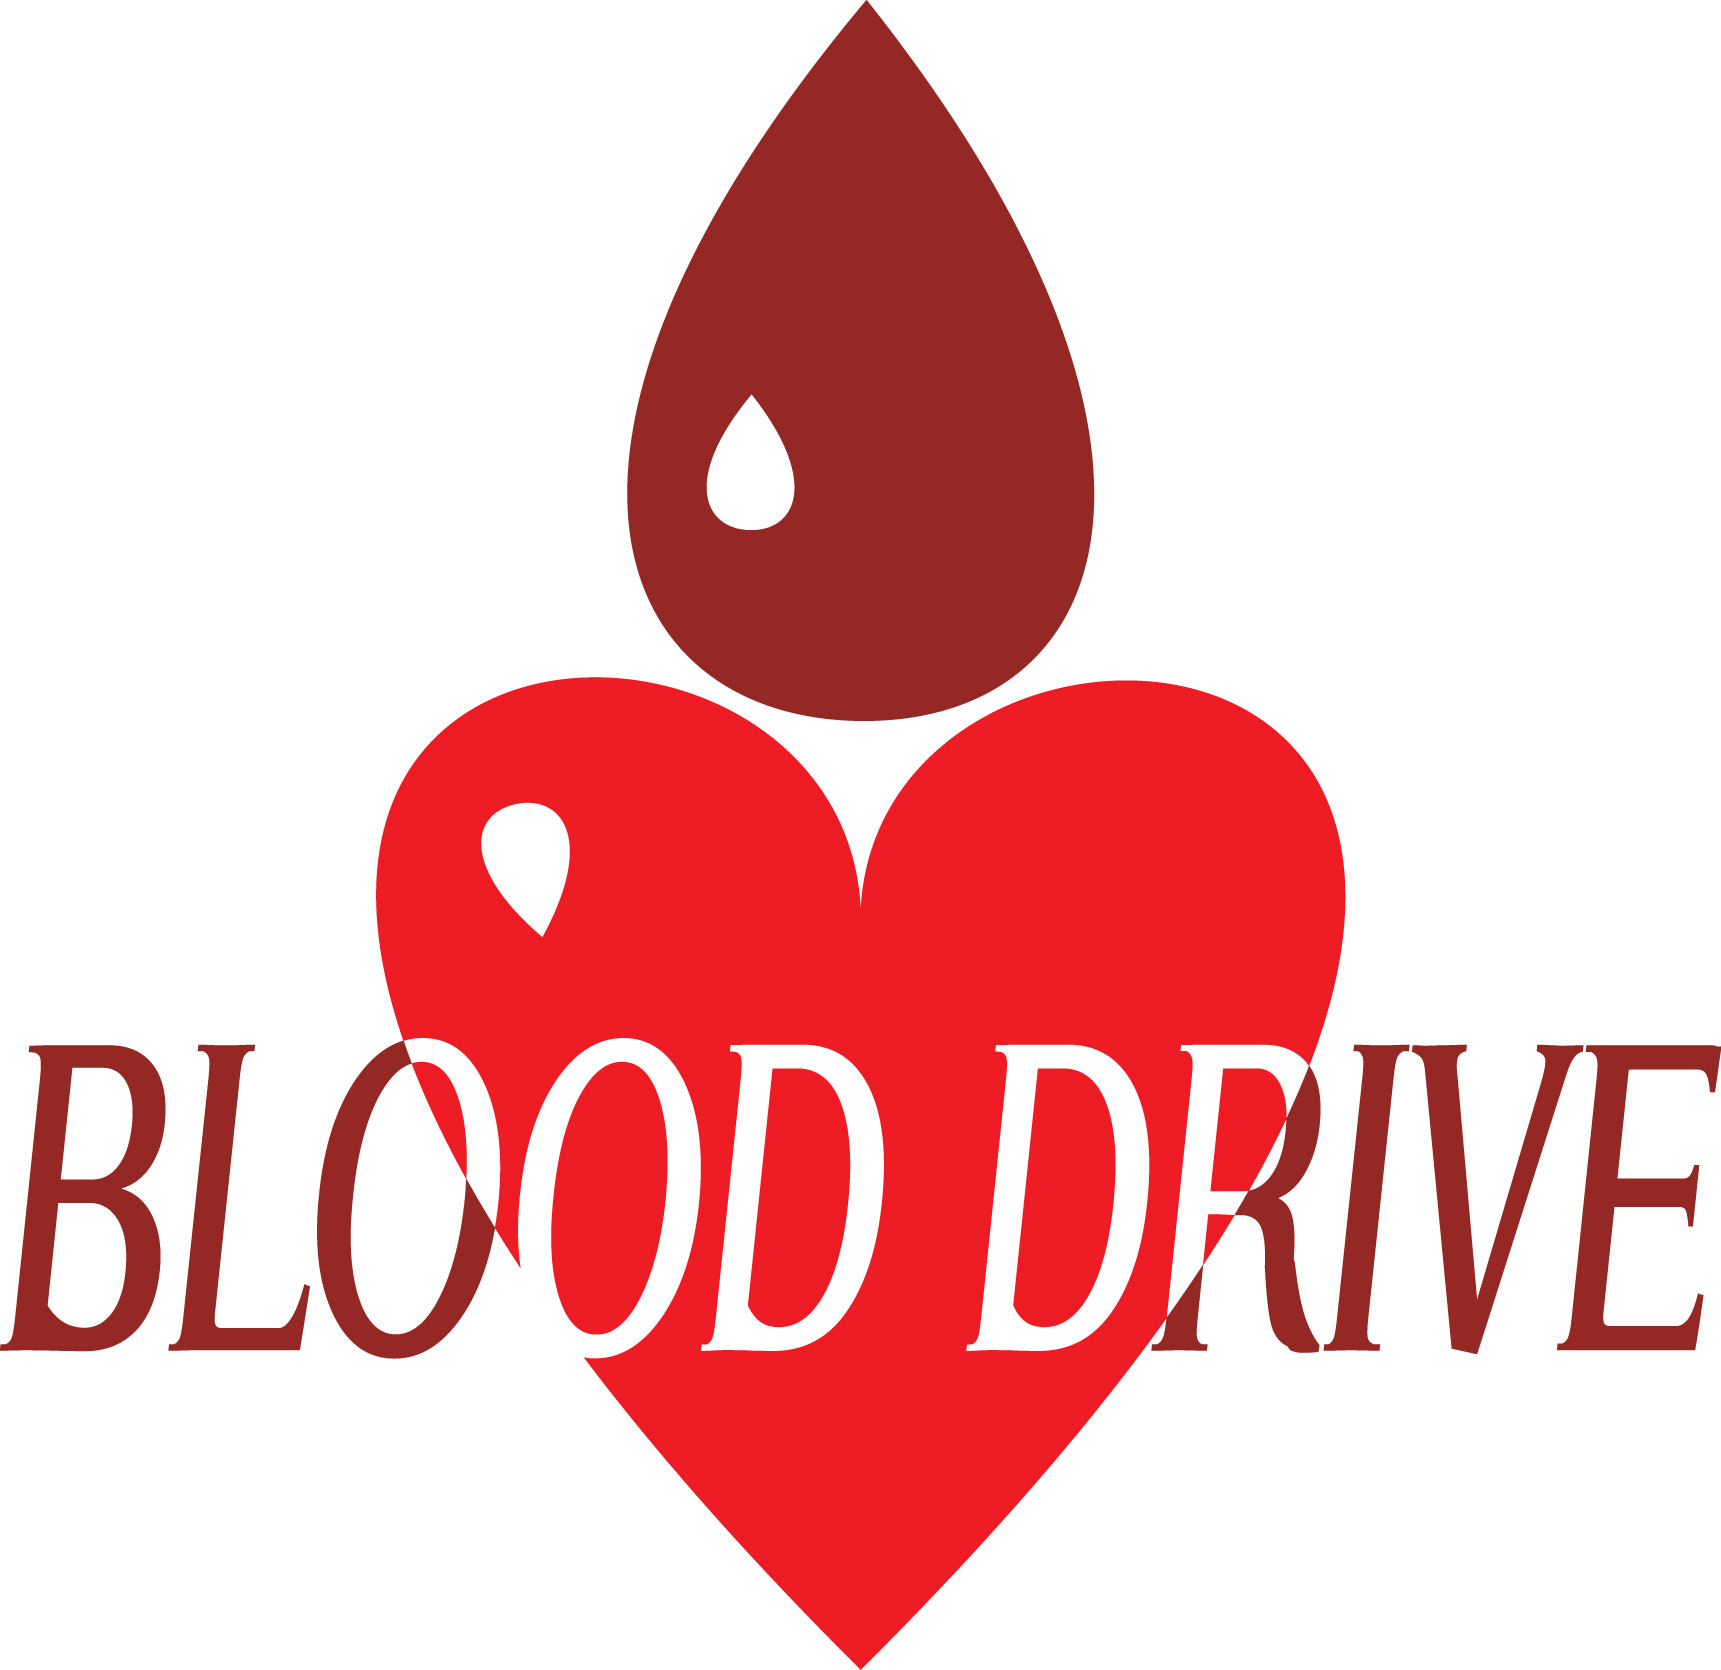 Red Cross Blood Drive at Tully Health Center in Stamford on August 25